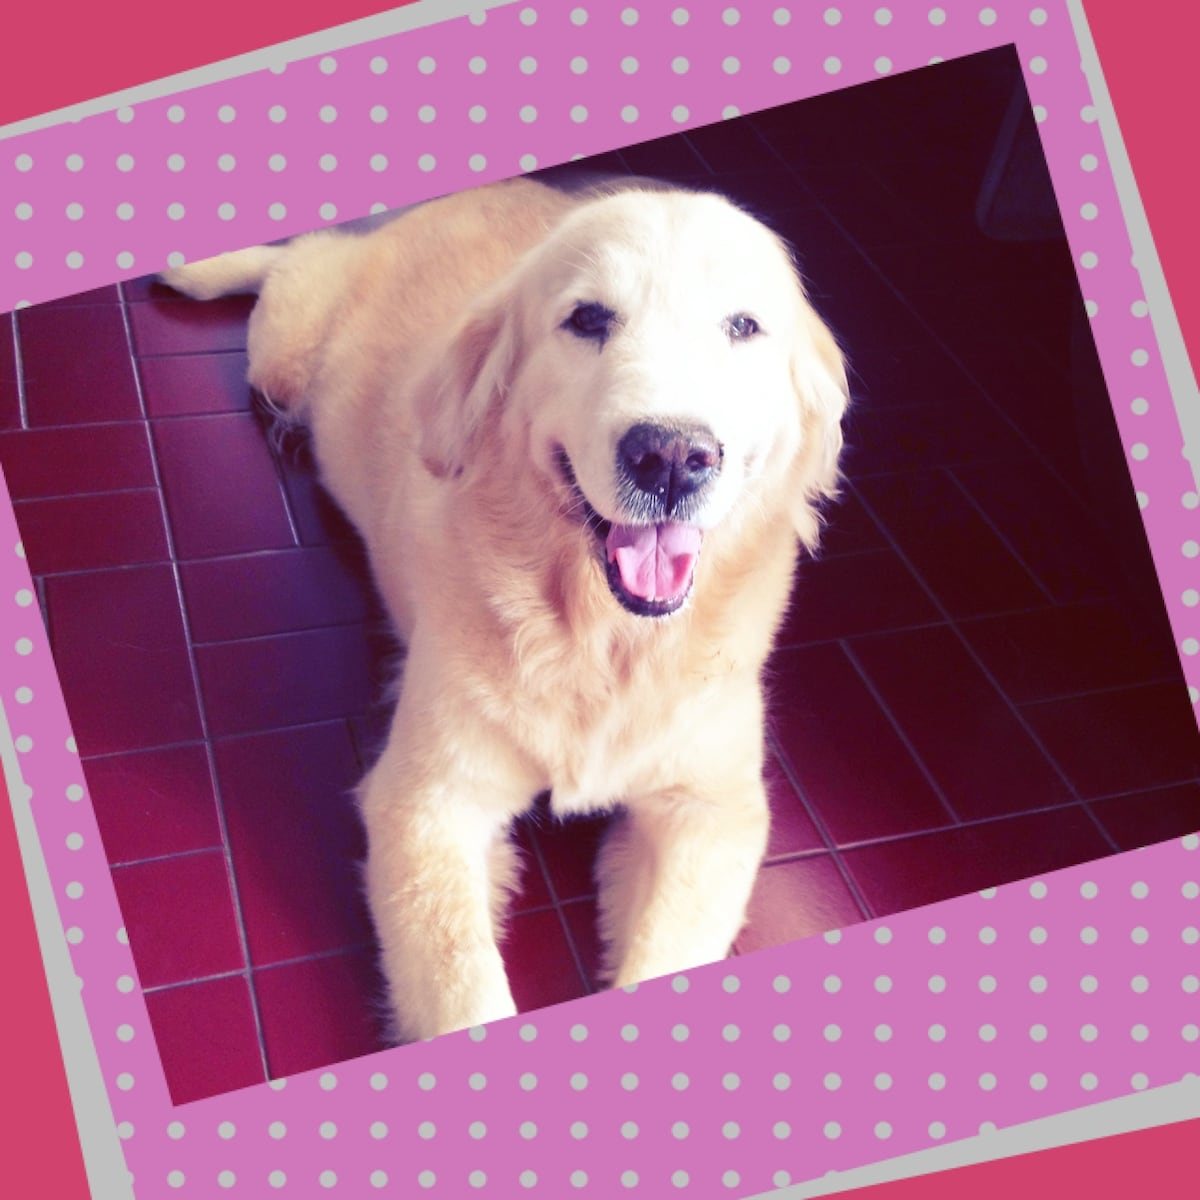 Our lovely and friendly golden retriever